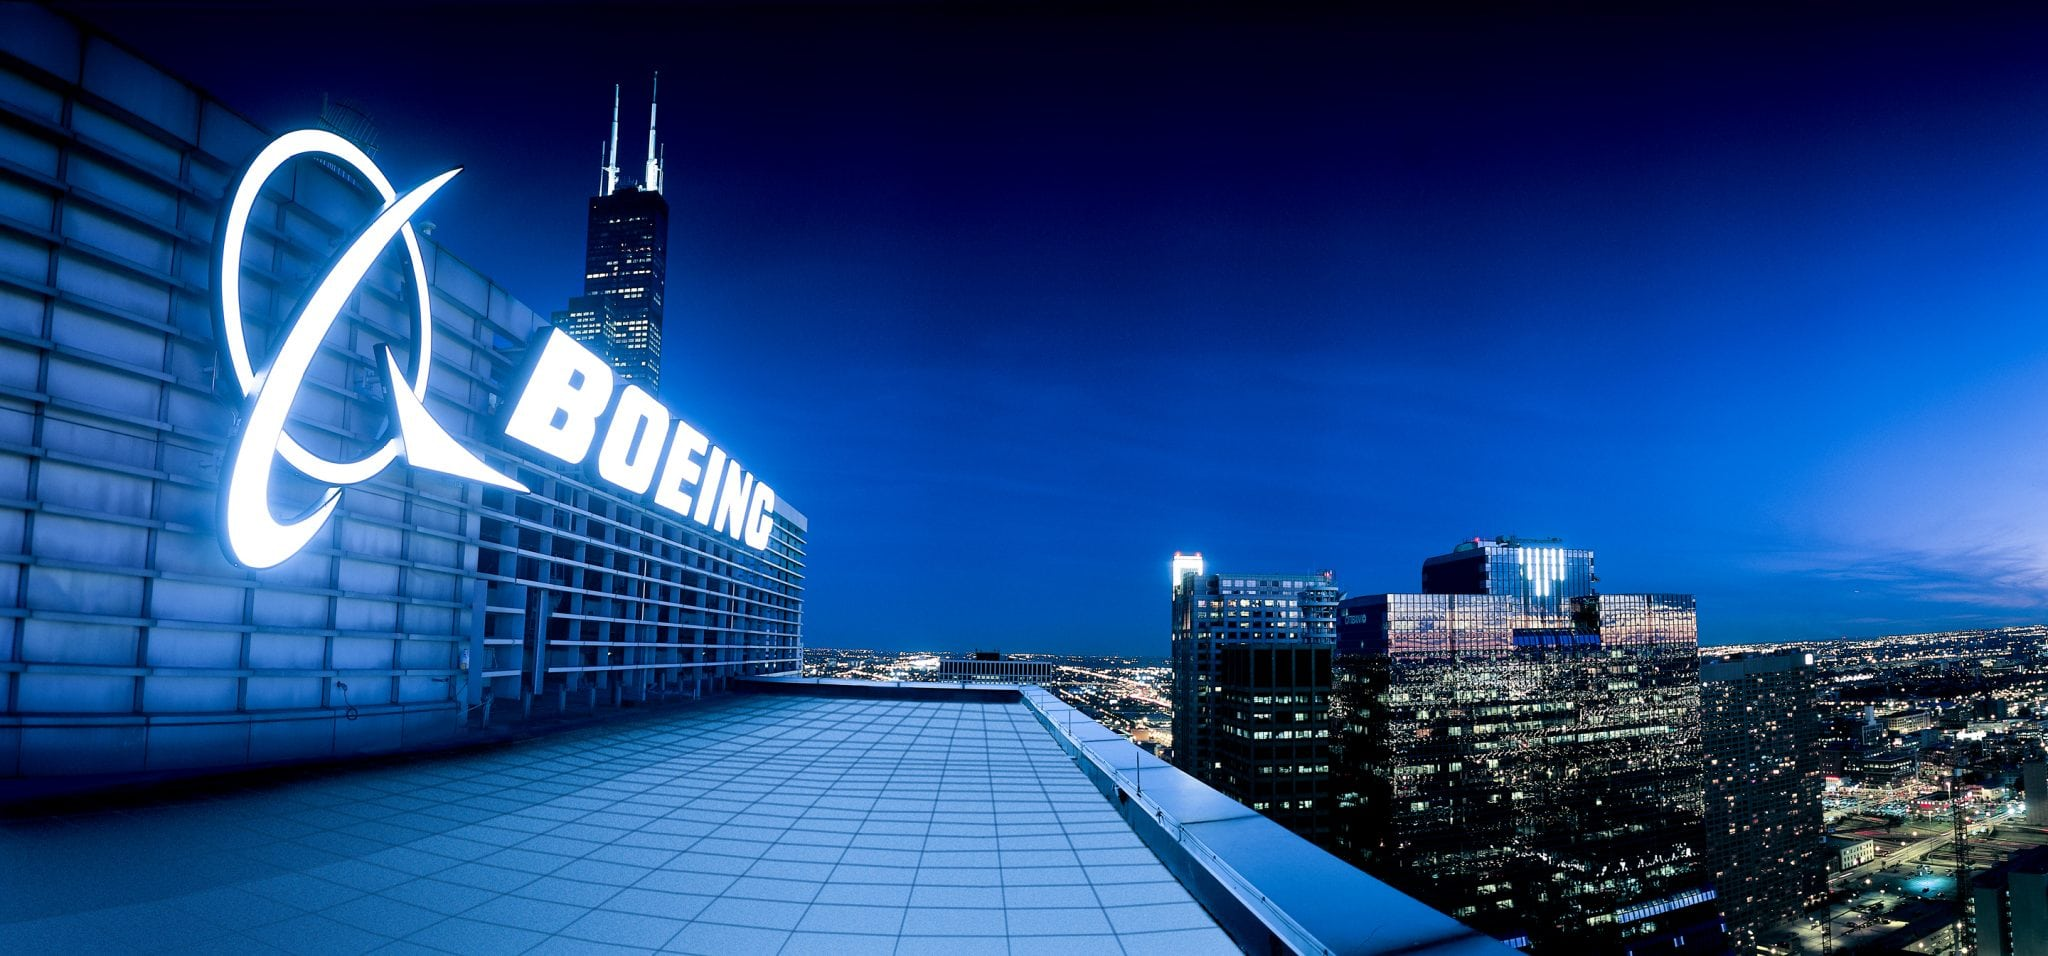 Boeing corporate offices in Chicago